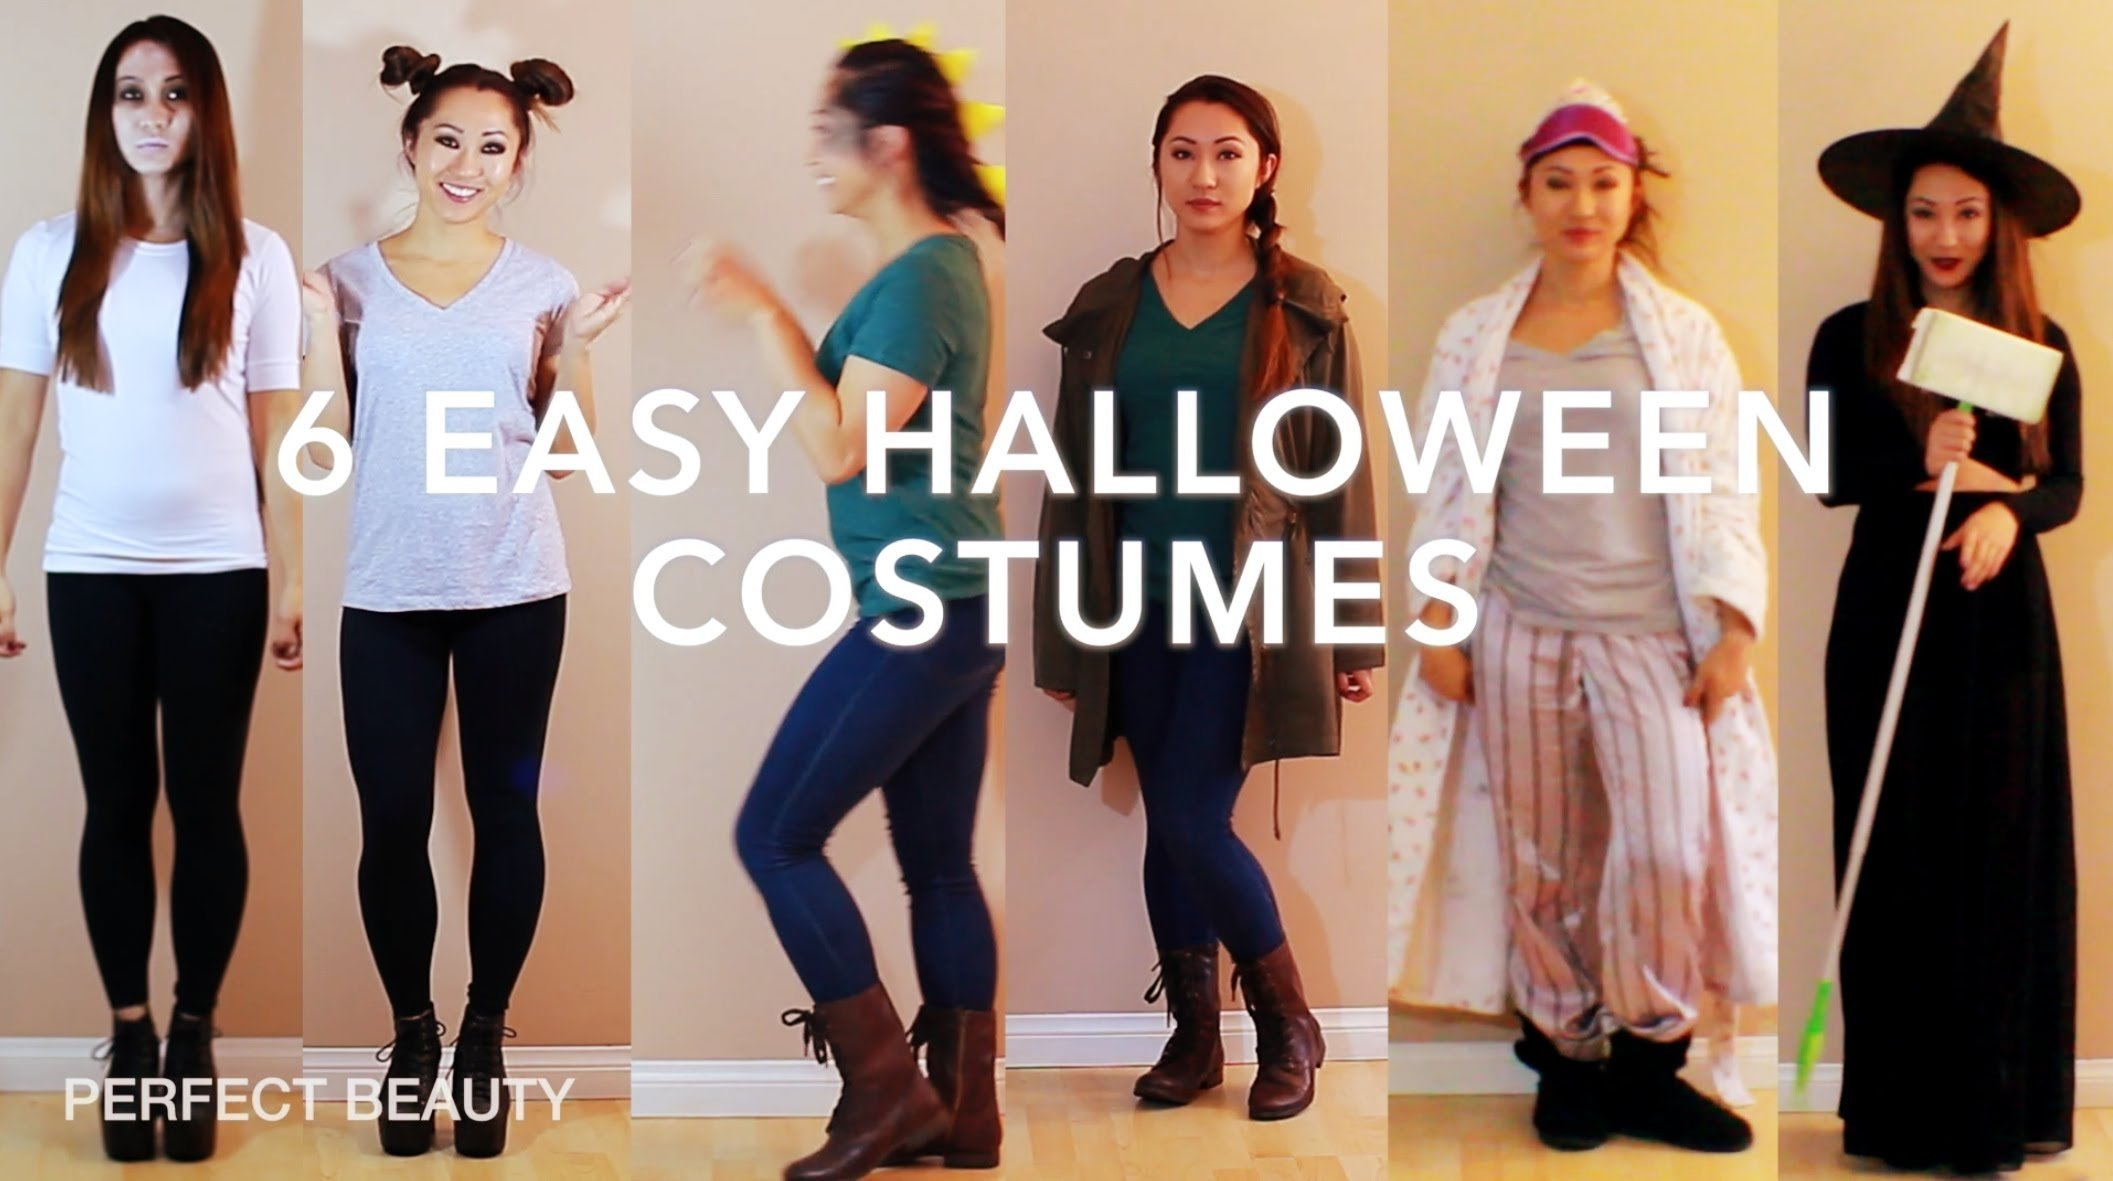 10 amazing last minute homemade costume ideas last minute diy halloween costume ideas perfect beauty youtube